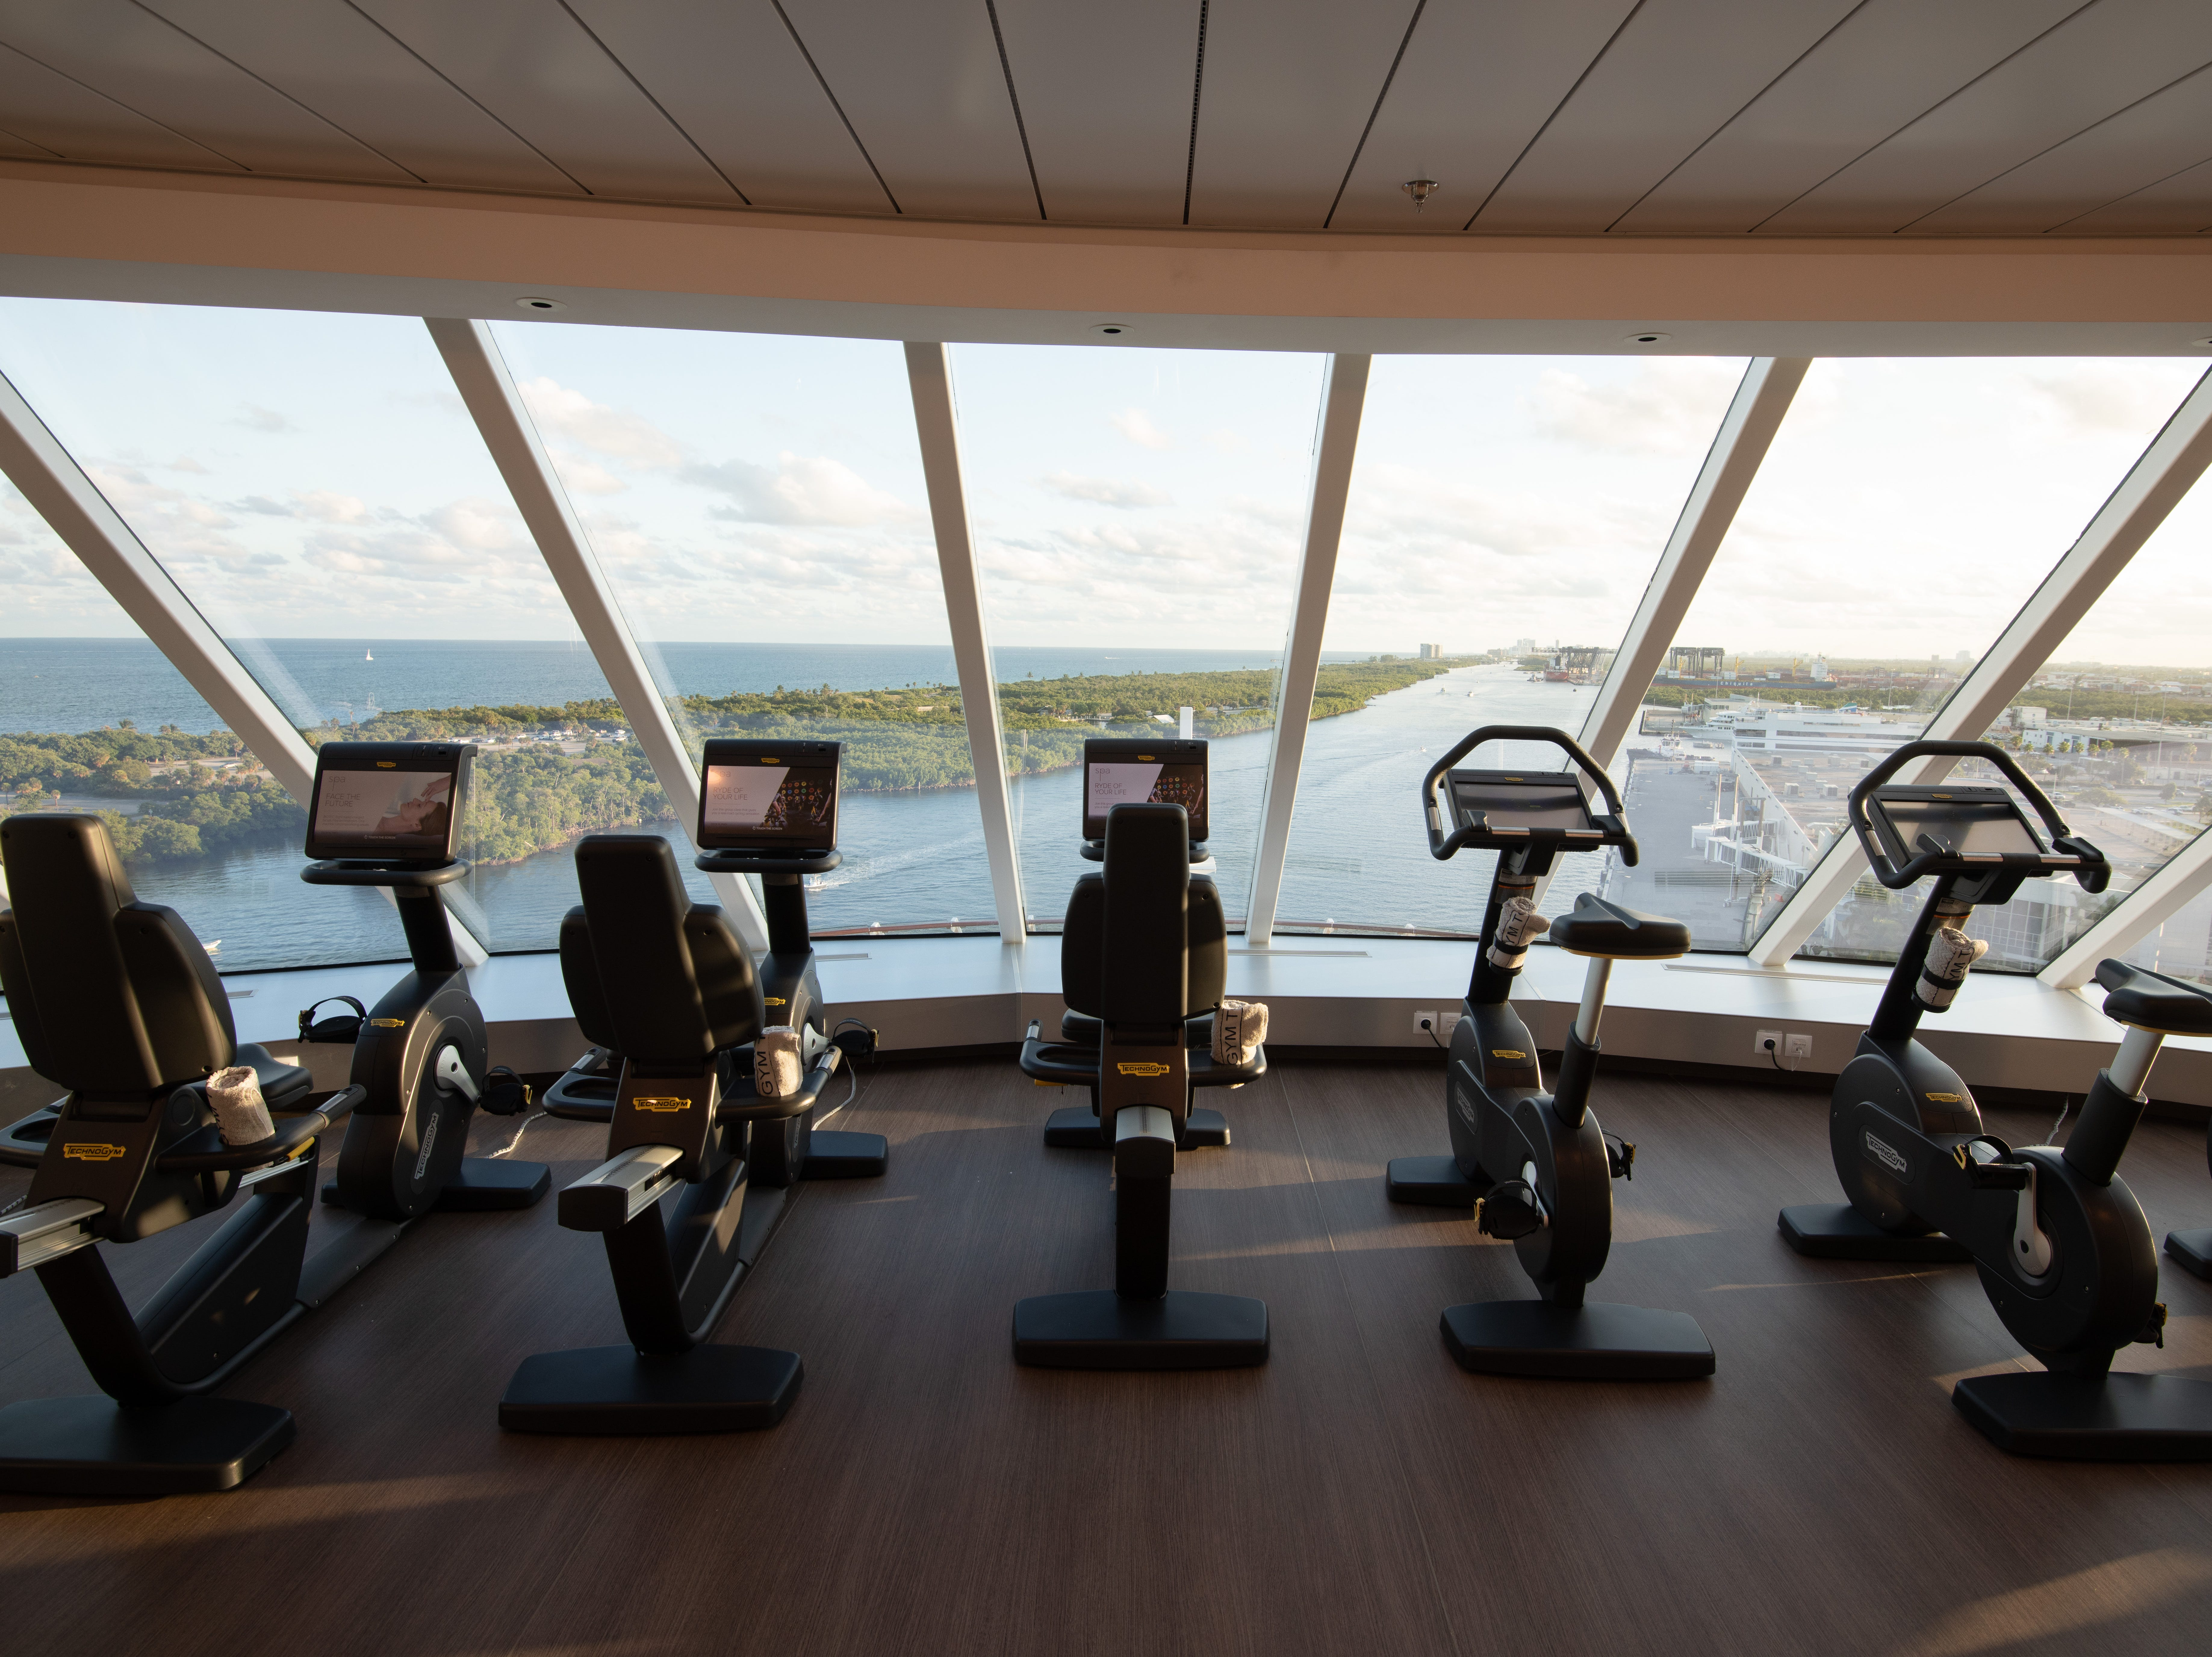 Located on Deck 15, Celebrity Edge's Fitness Center features floor-to-ceiling windows overlooking the front of the vessel.